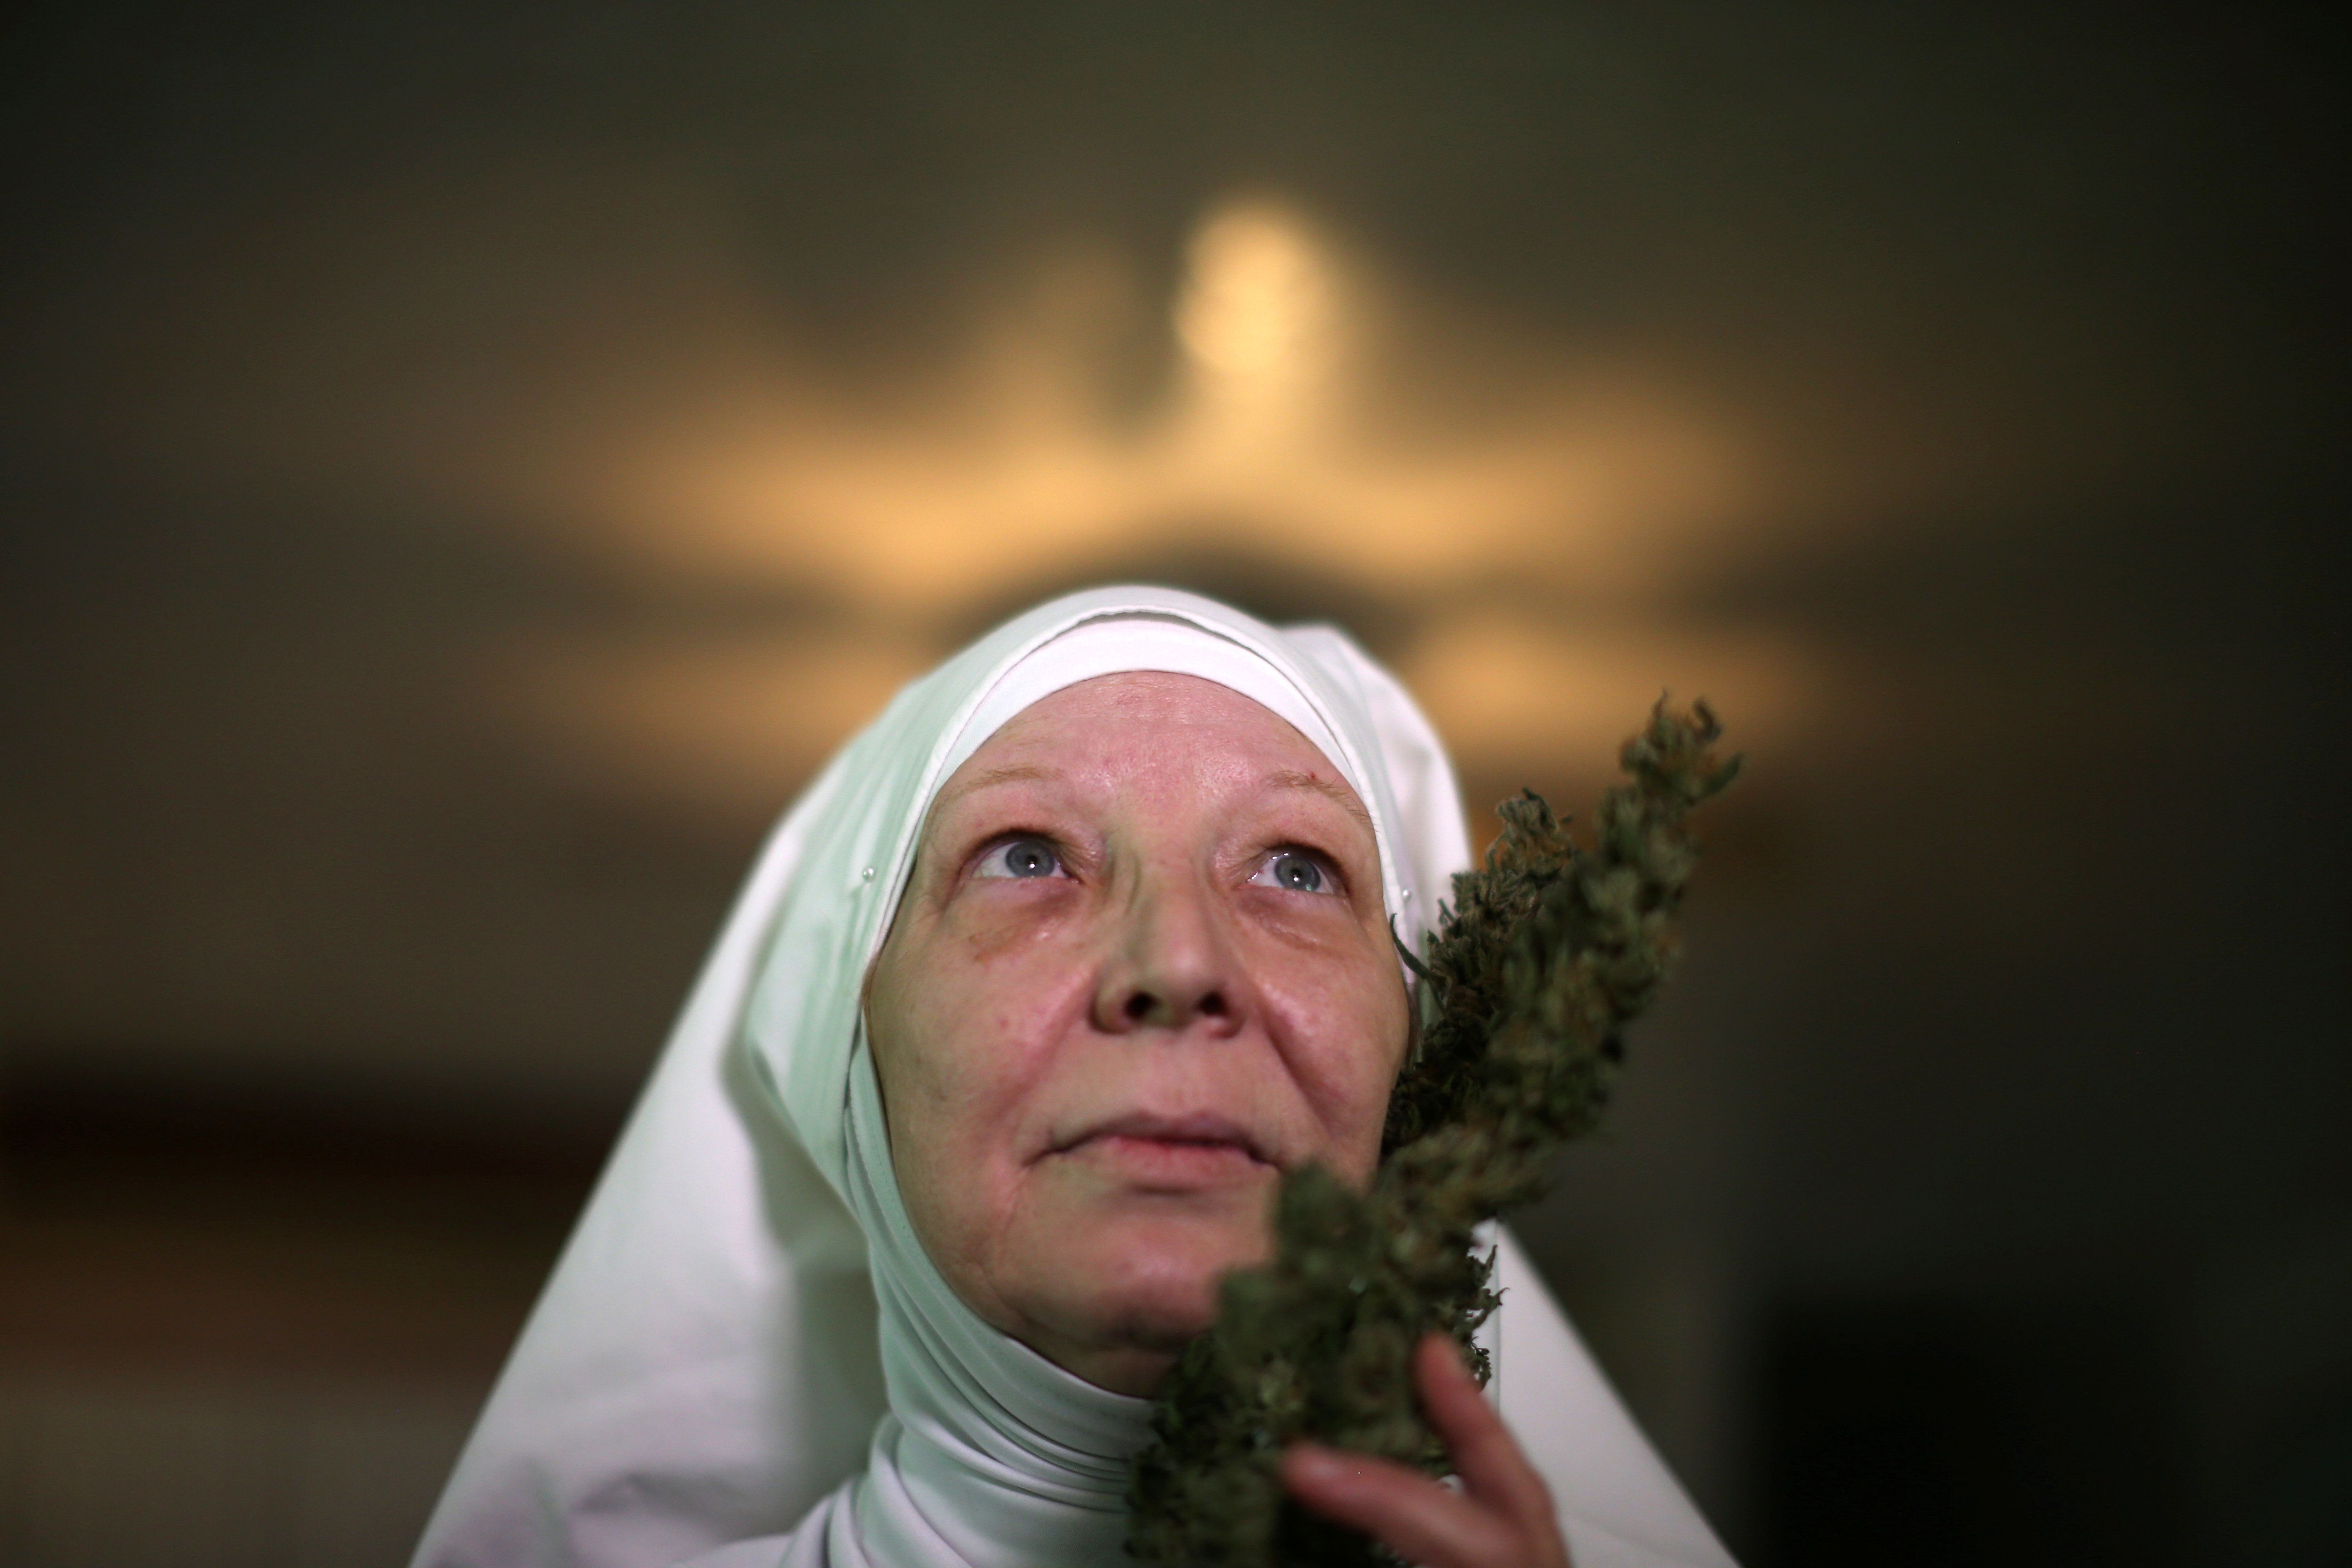 Meet The 'Weed Nuns' Growing Cannabis And Making Balms, Oils And